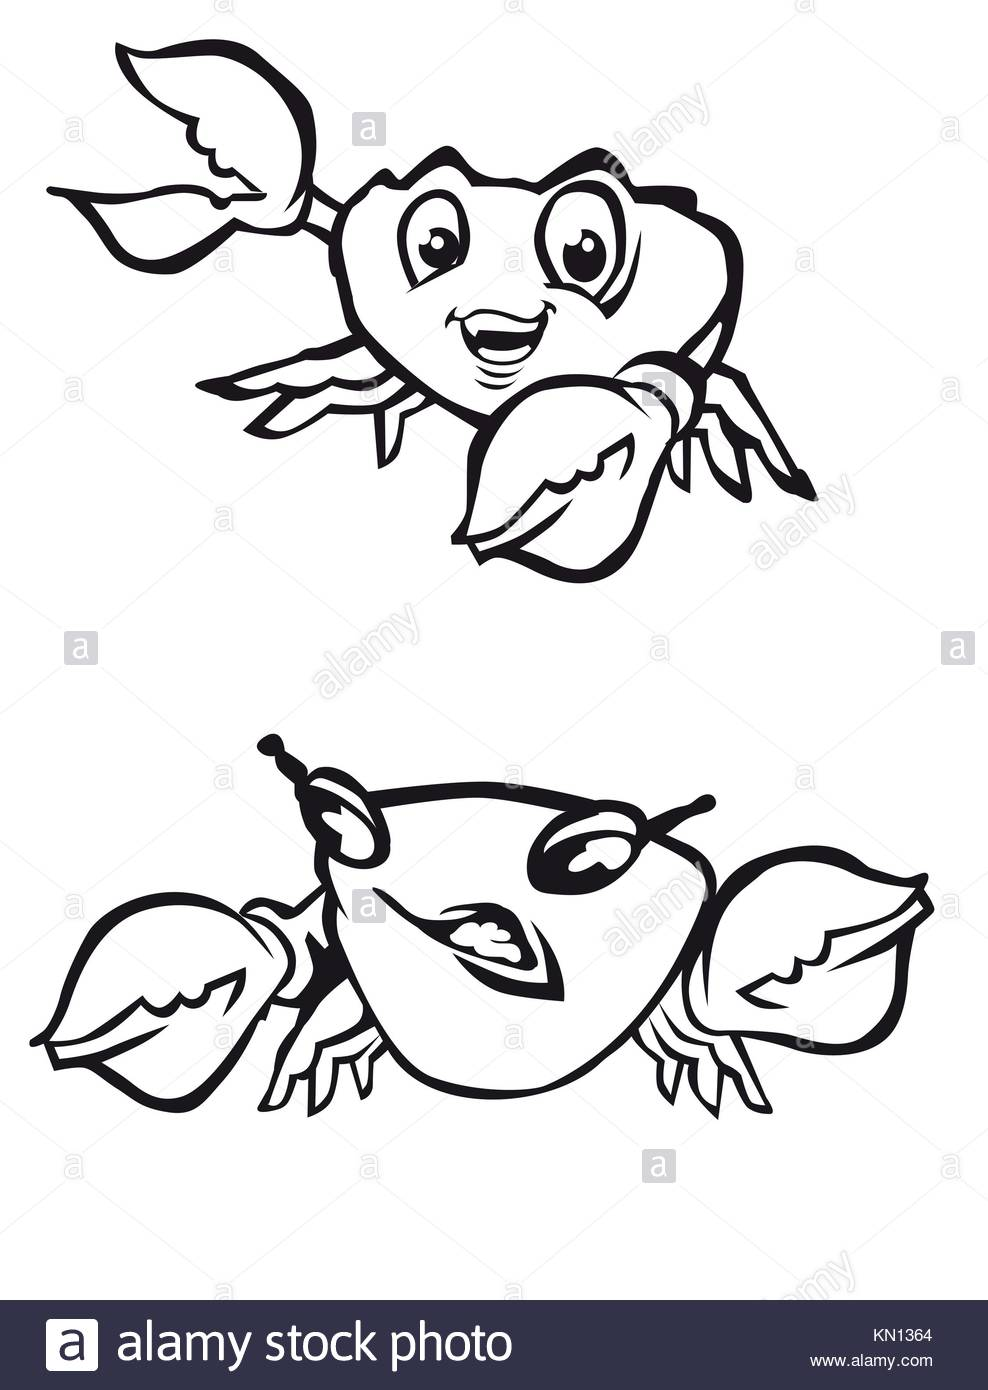 Cartoon crabs with claws as a symbols of seafood - Stock Image